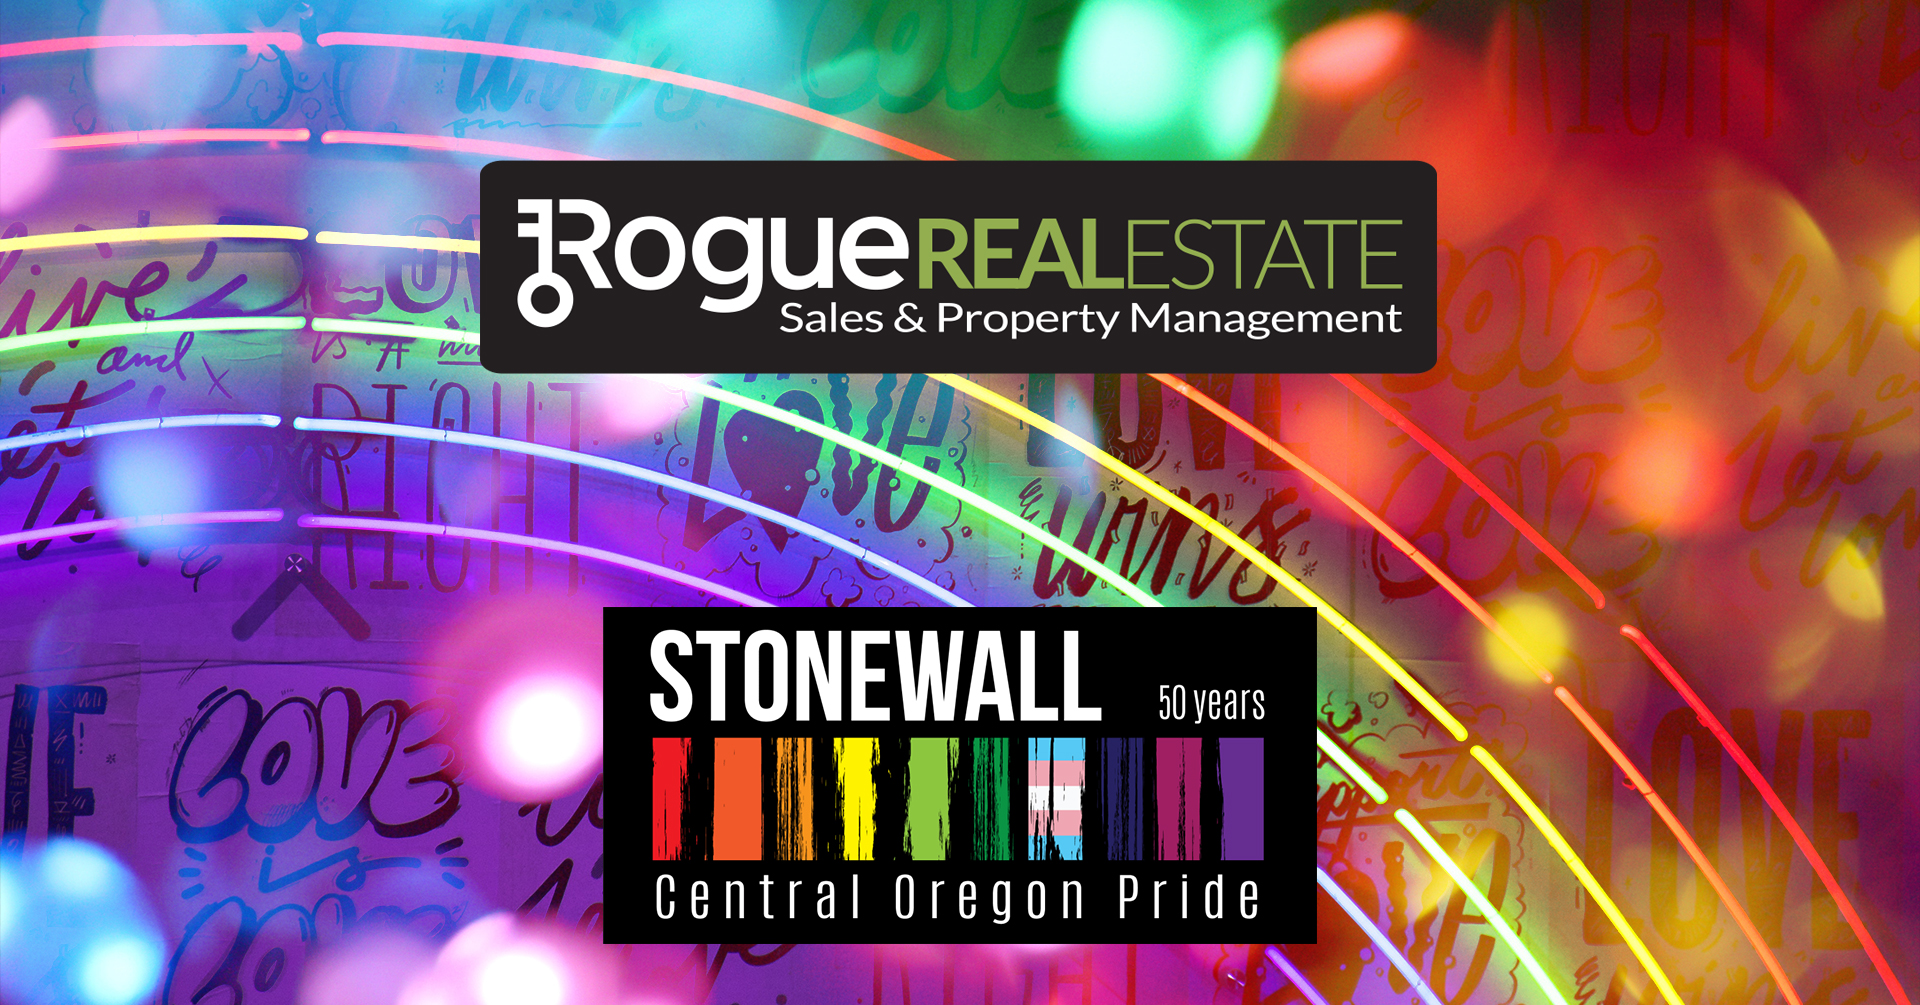 Rogue Real Estate at Central Oregon Pride